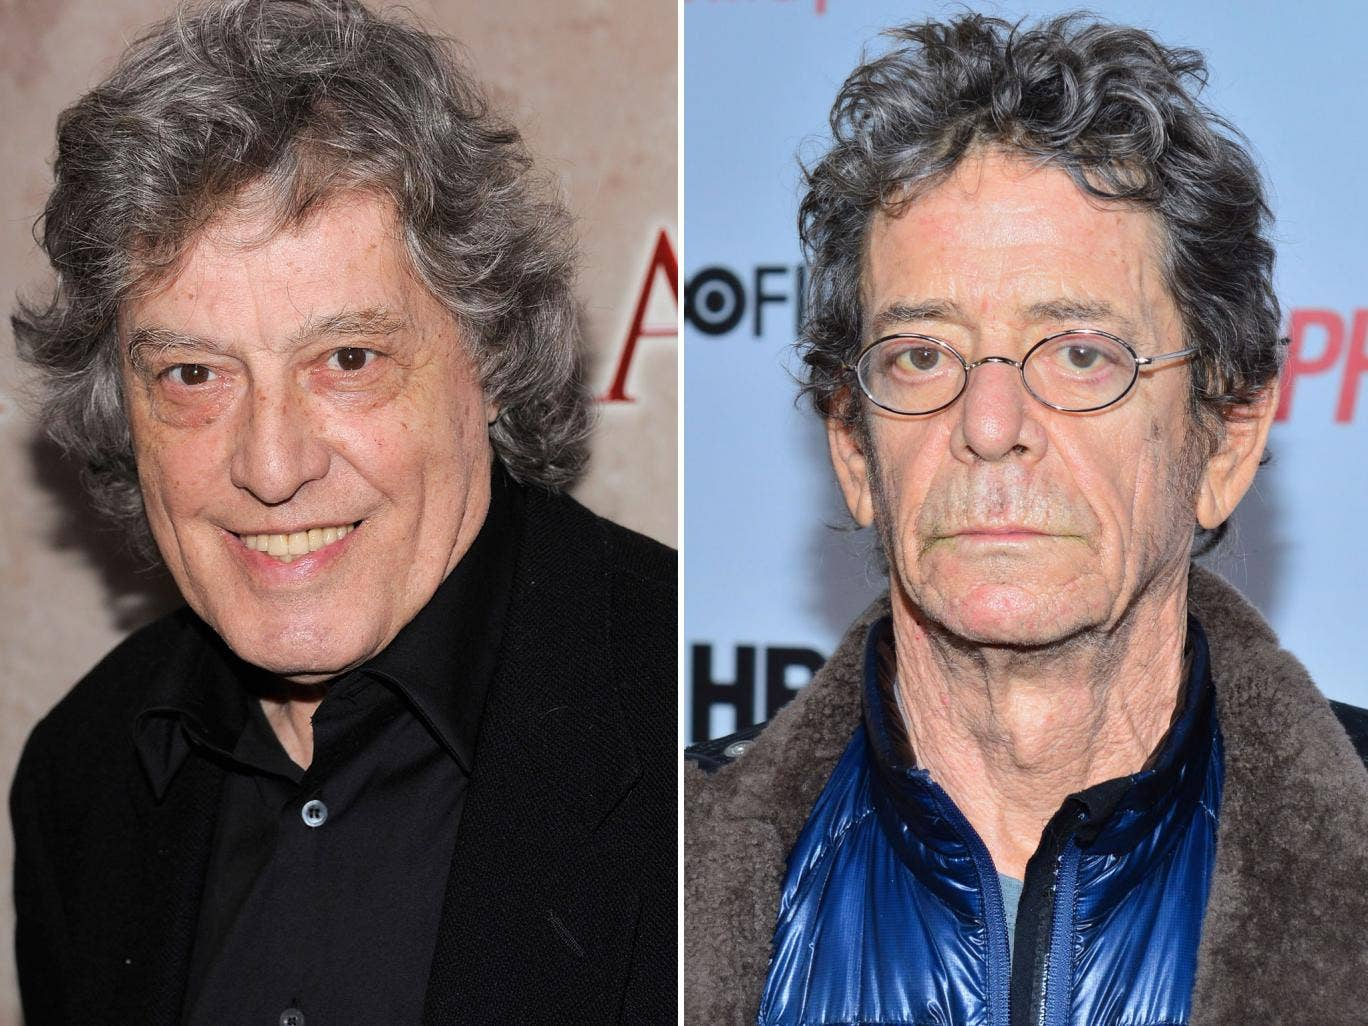 Sir Tom Stoppard has joined the high-profile cultural figures paying tribute to Lou Reed